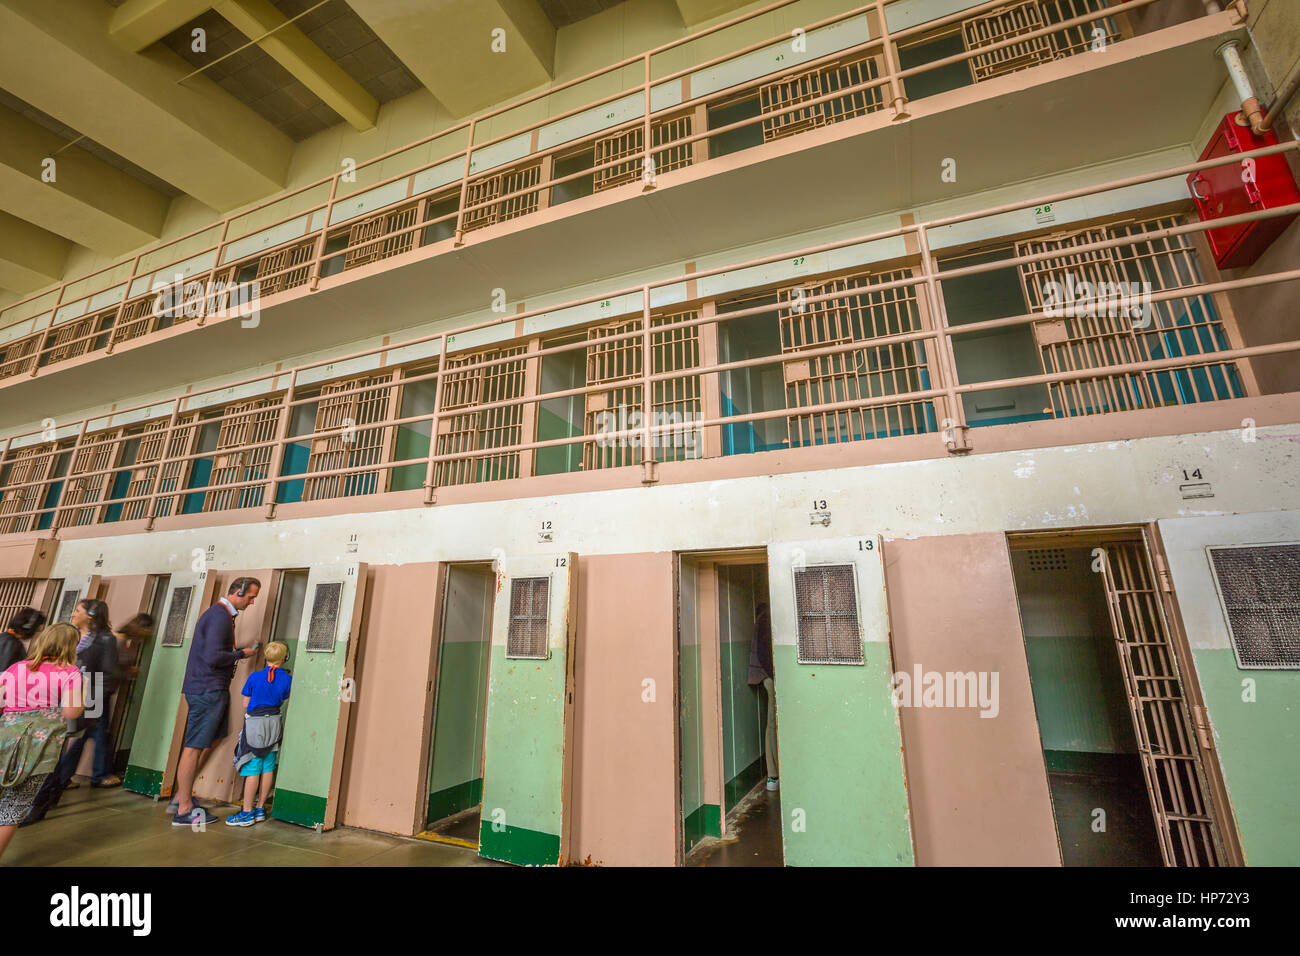 San Francisco, California, United States - August 14, 2016: Alcatraz special cells for solitary confinement, The - Stock Image